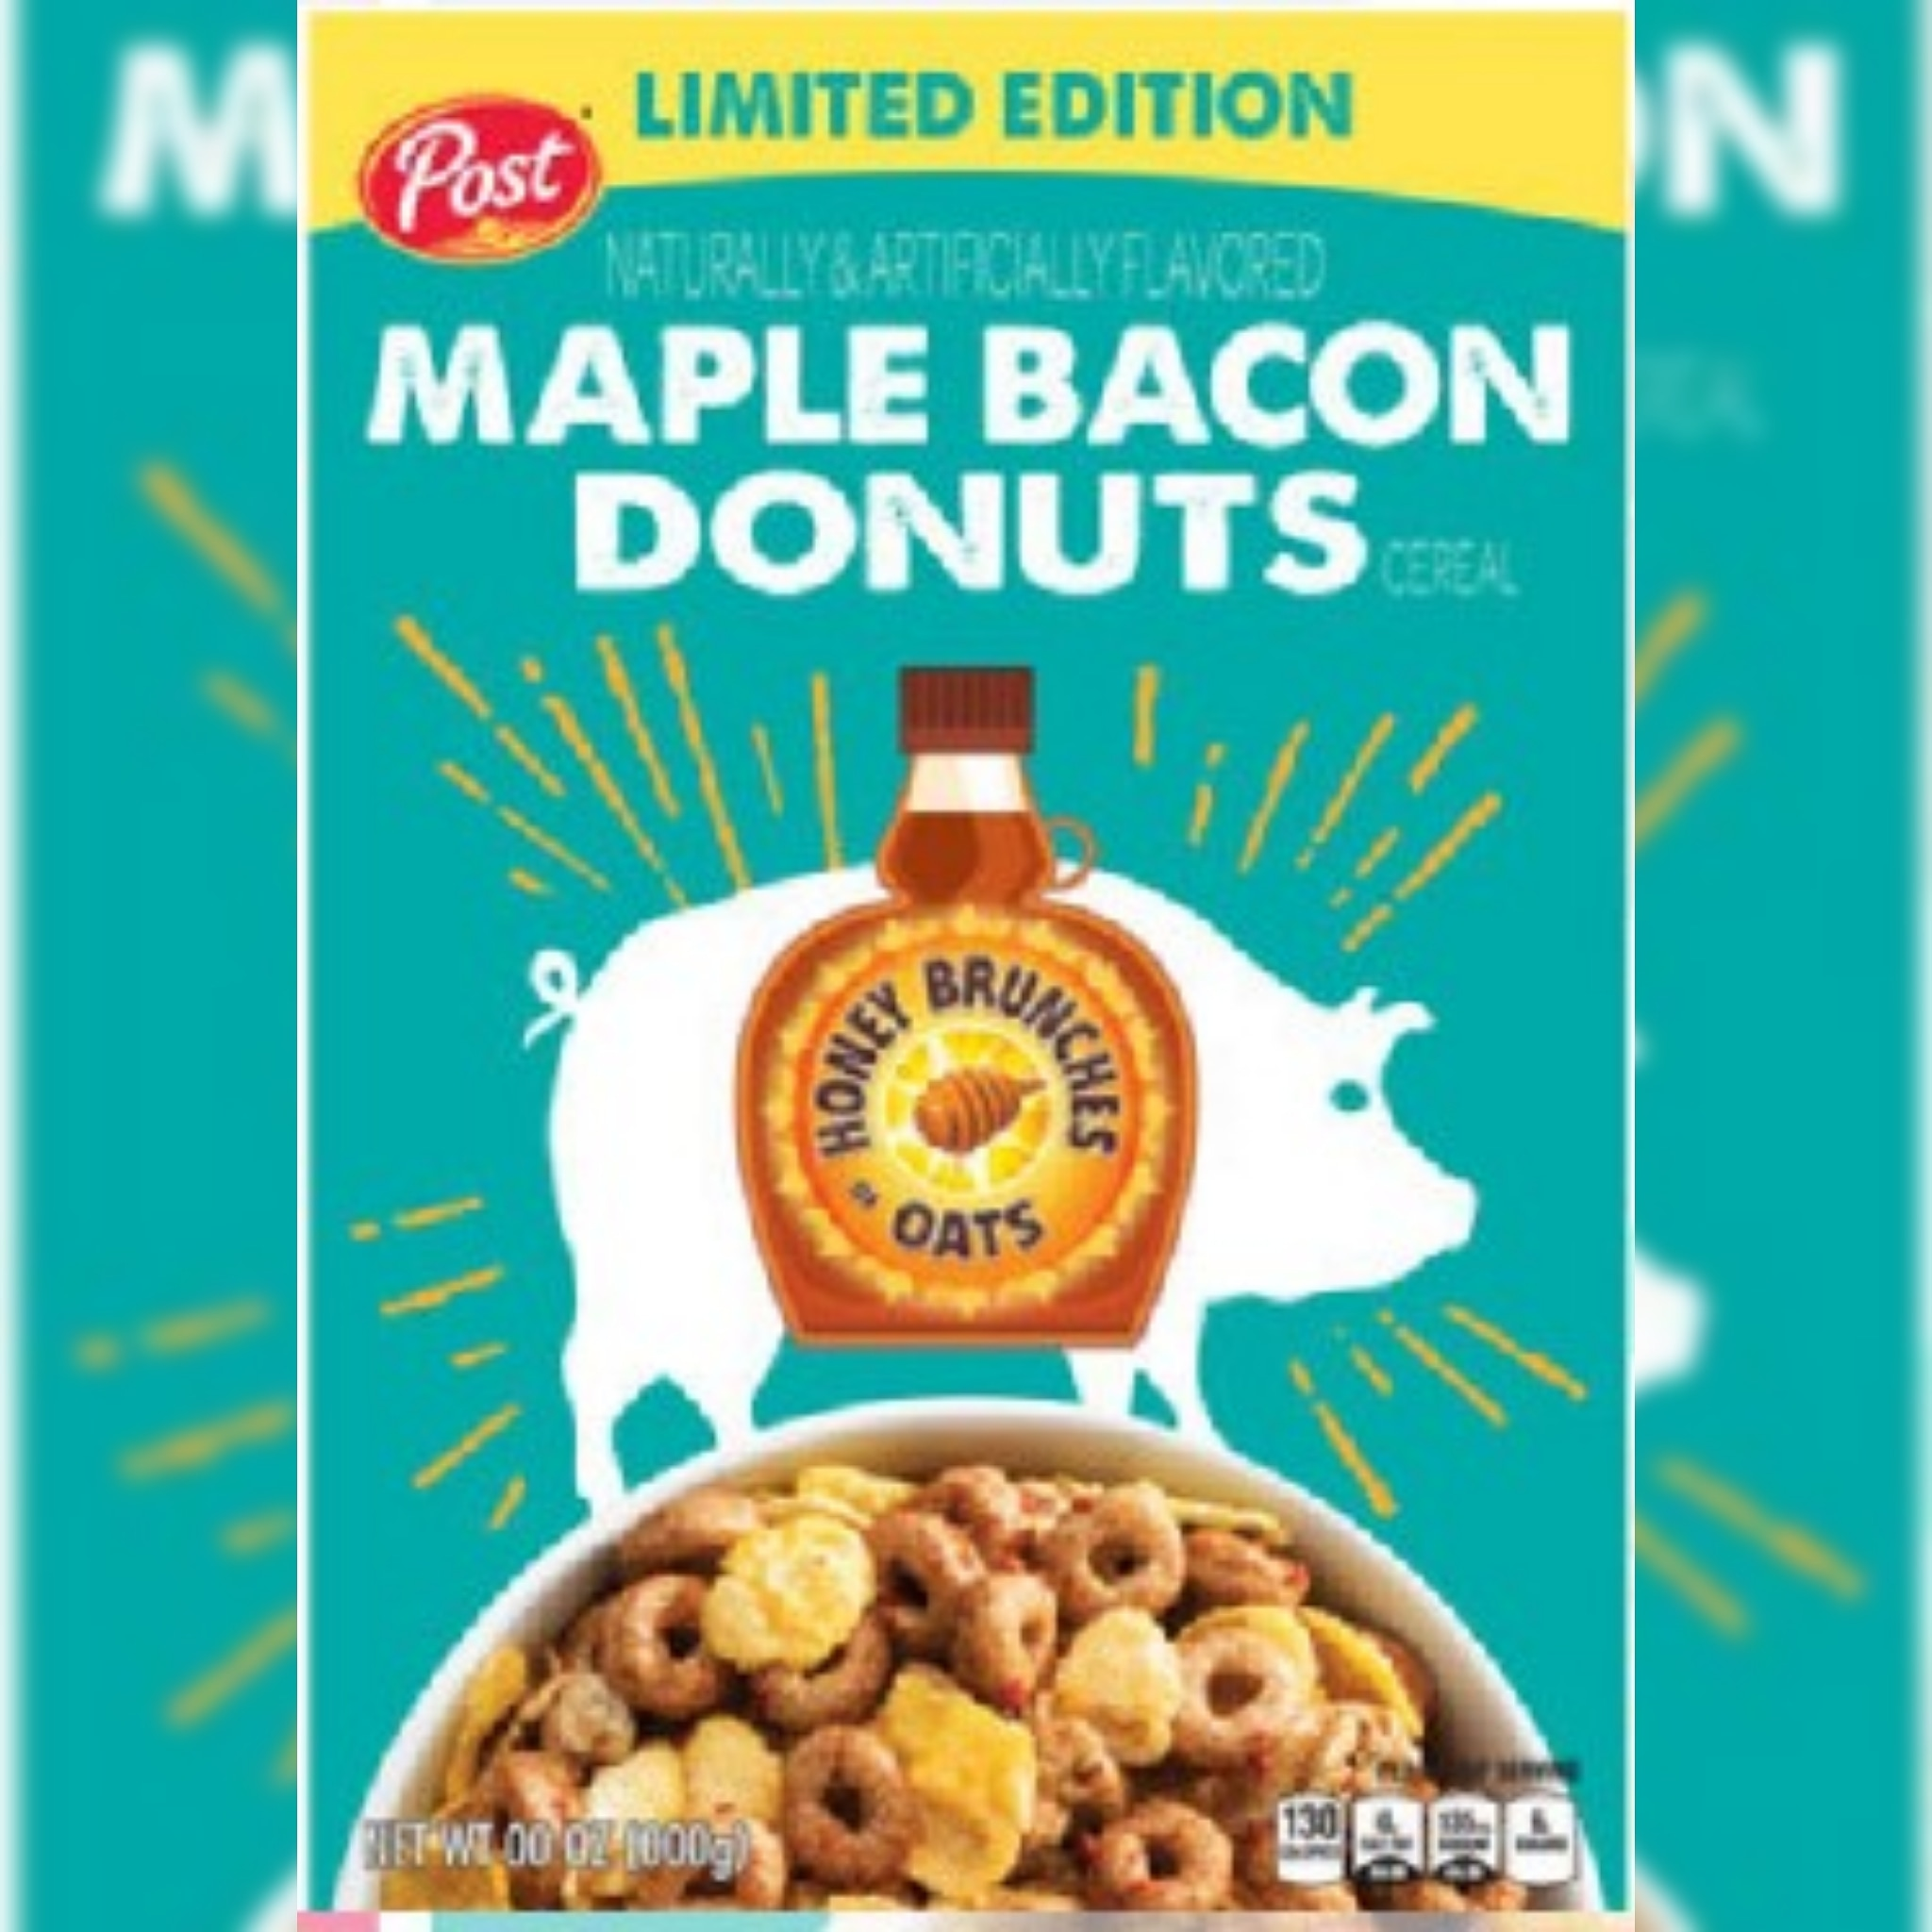 News: Maple Bacon Donuts Cereal Is Coming For National